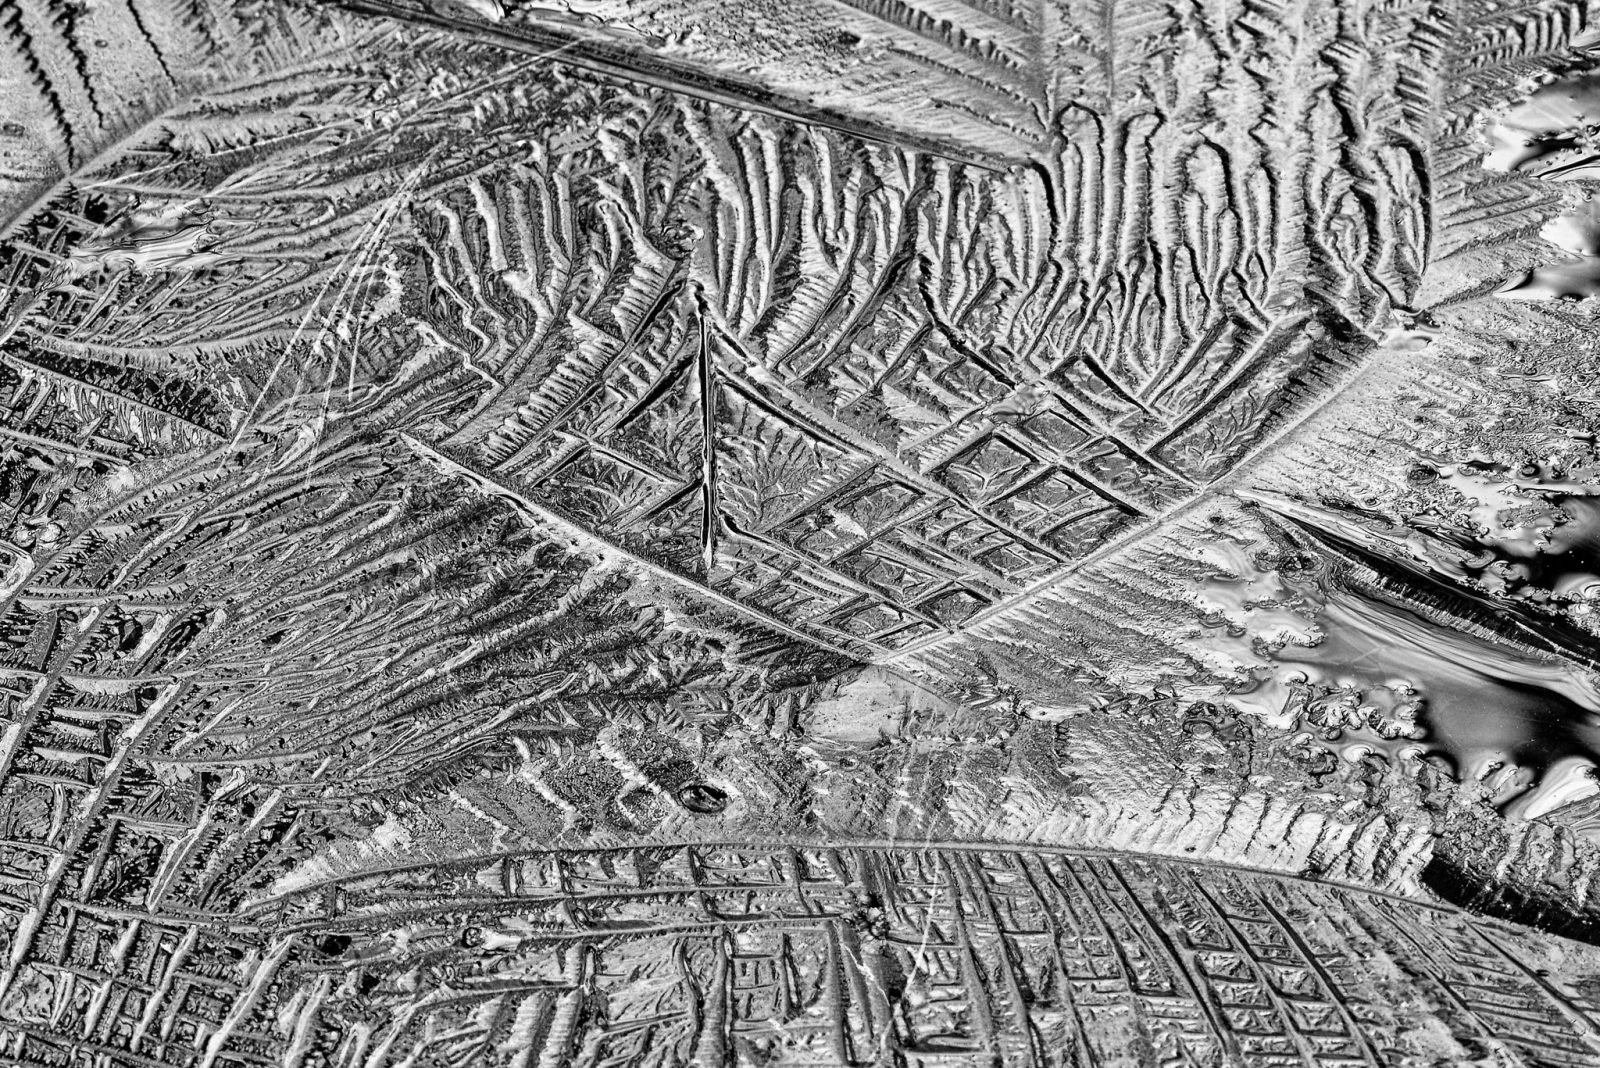 Patterns in the Ice